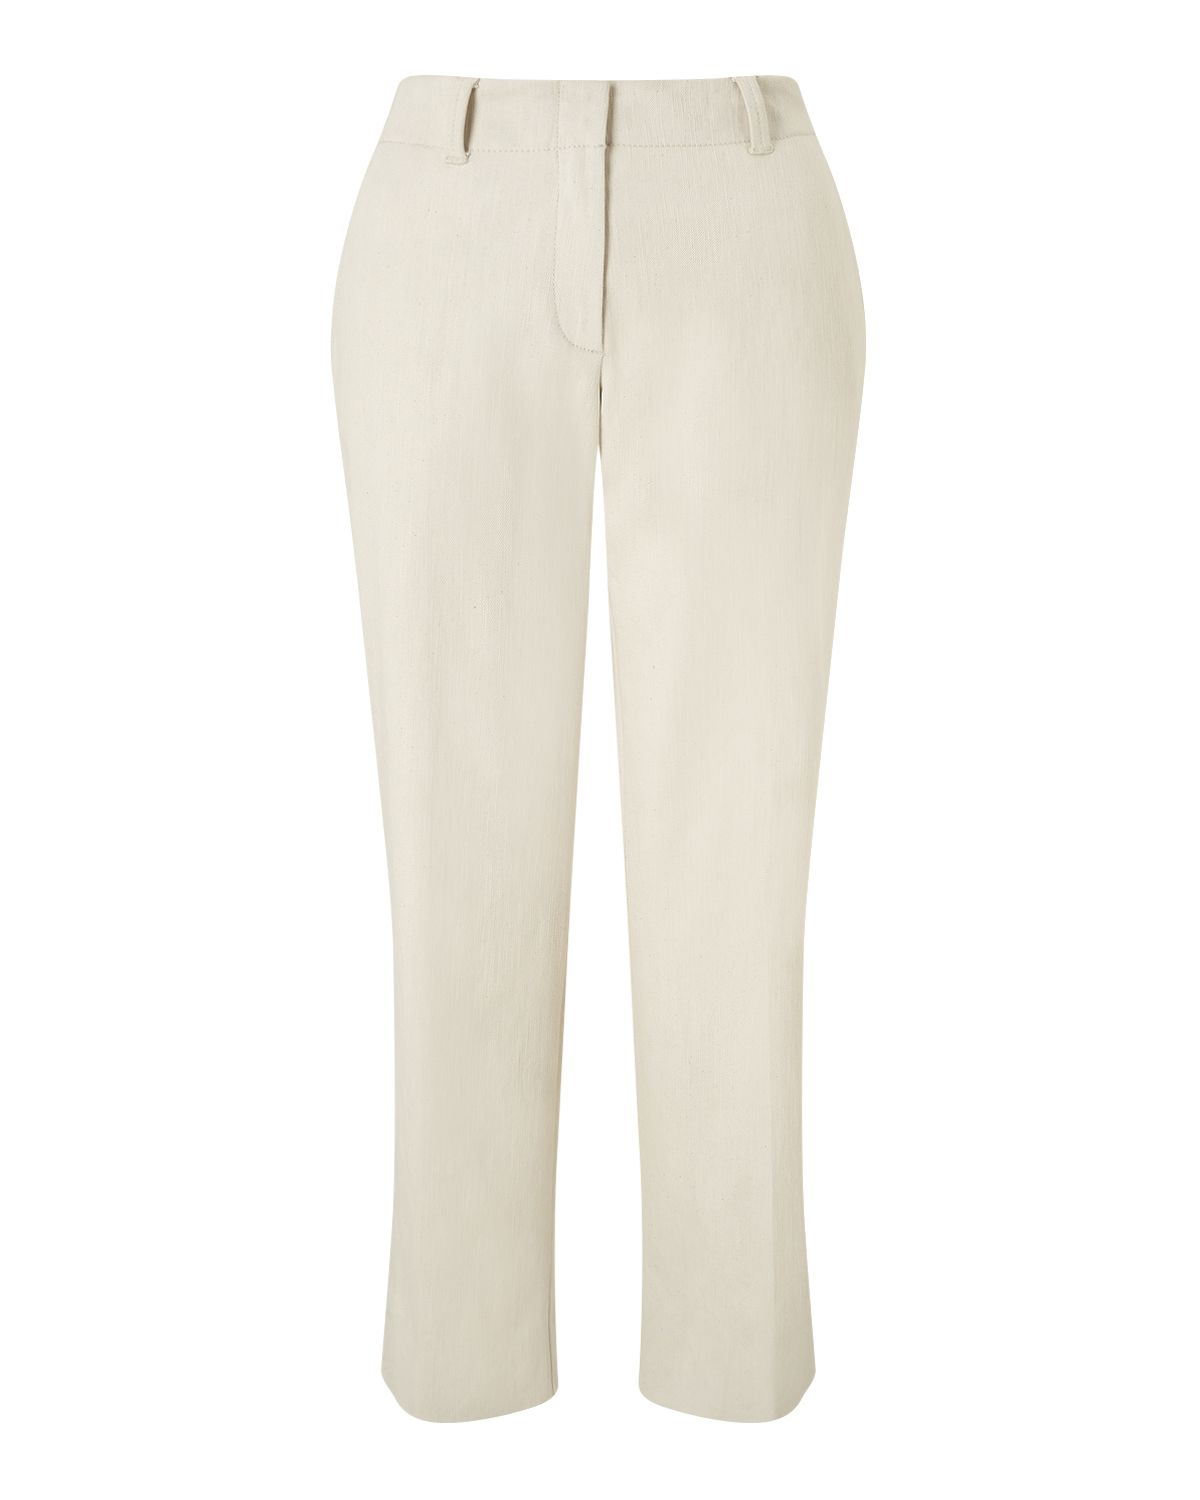 Jigsaw Cropped Straight Leg Chino, Cream